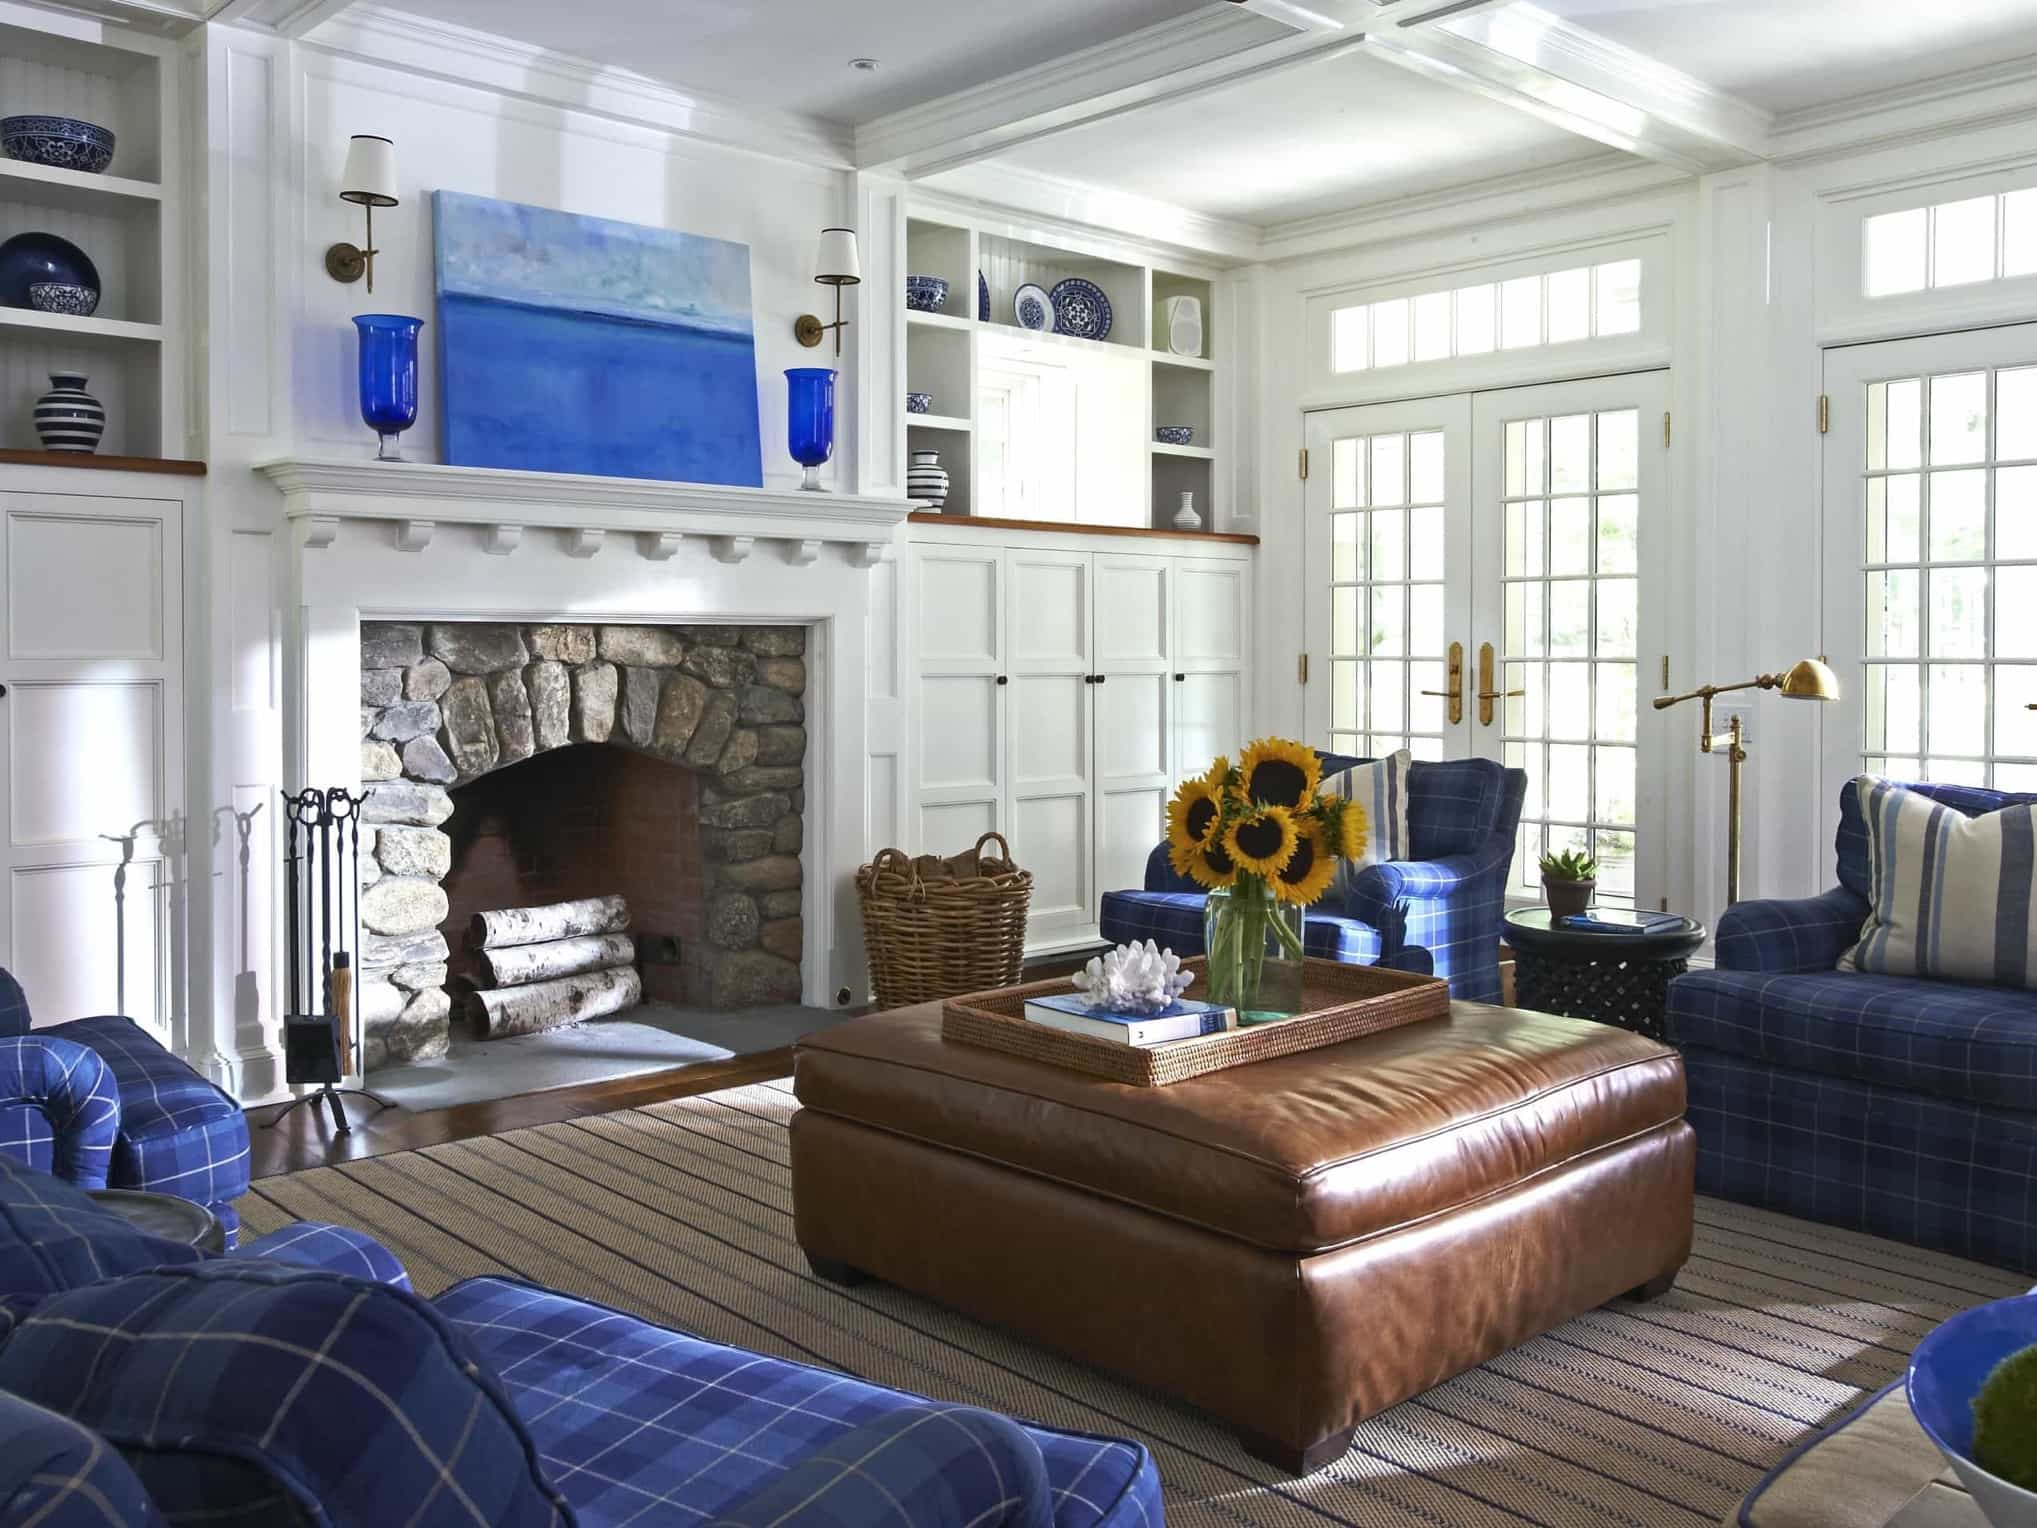 Featured Image of White Coastal Living Room With Stone Fireplace